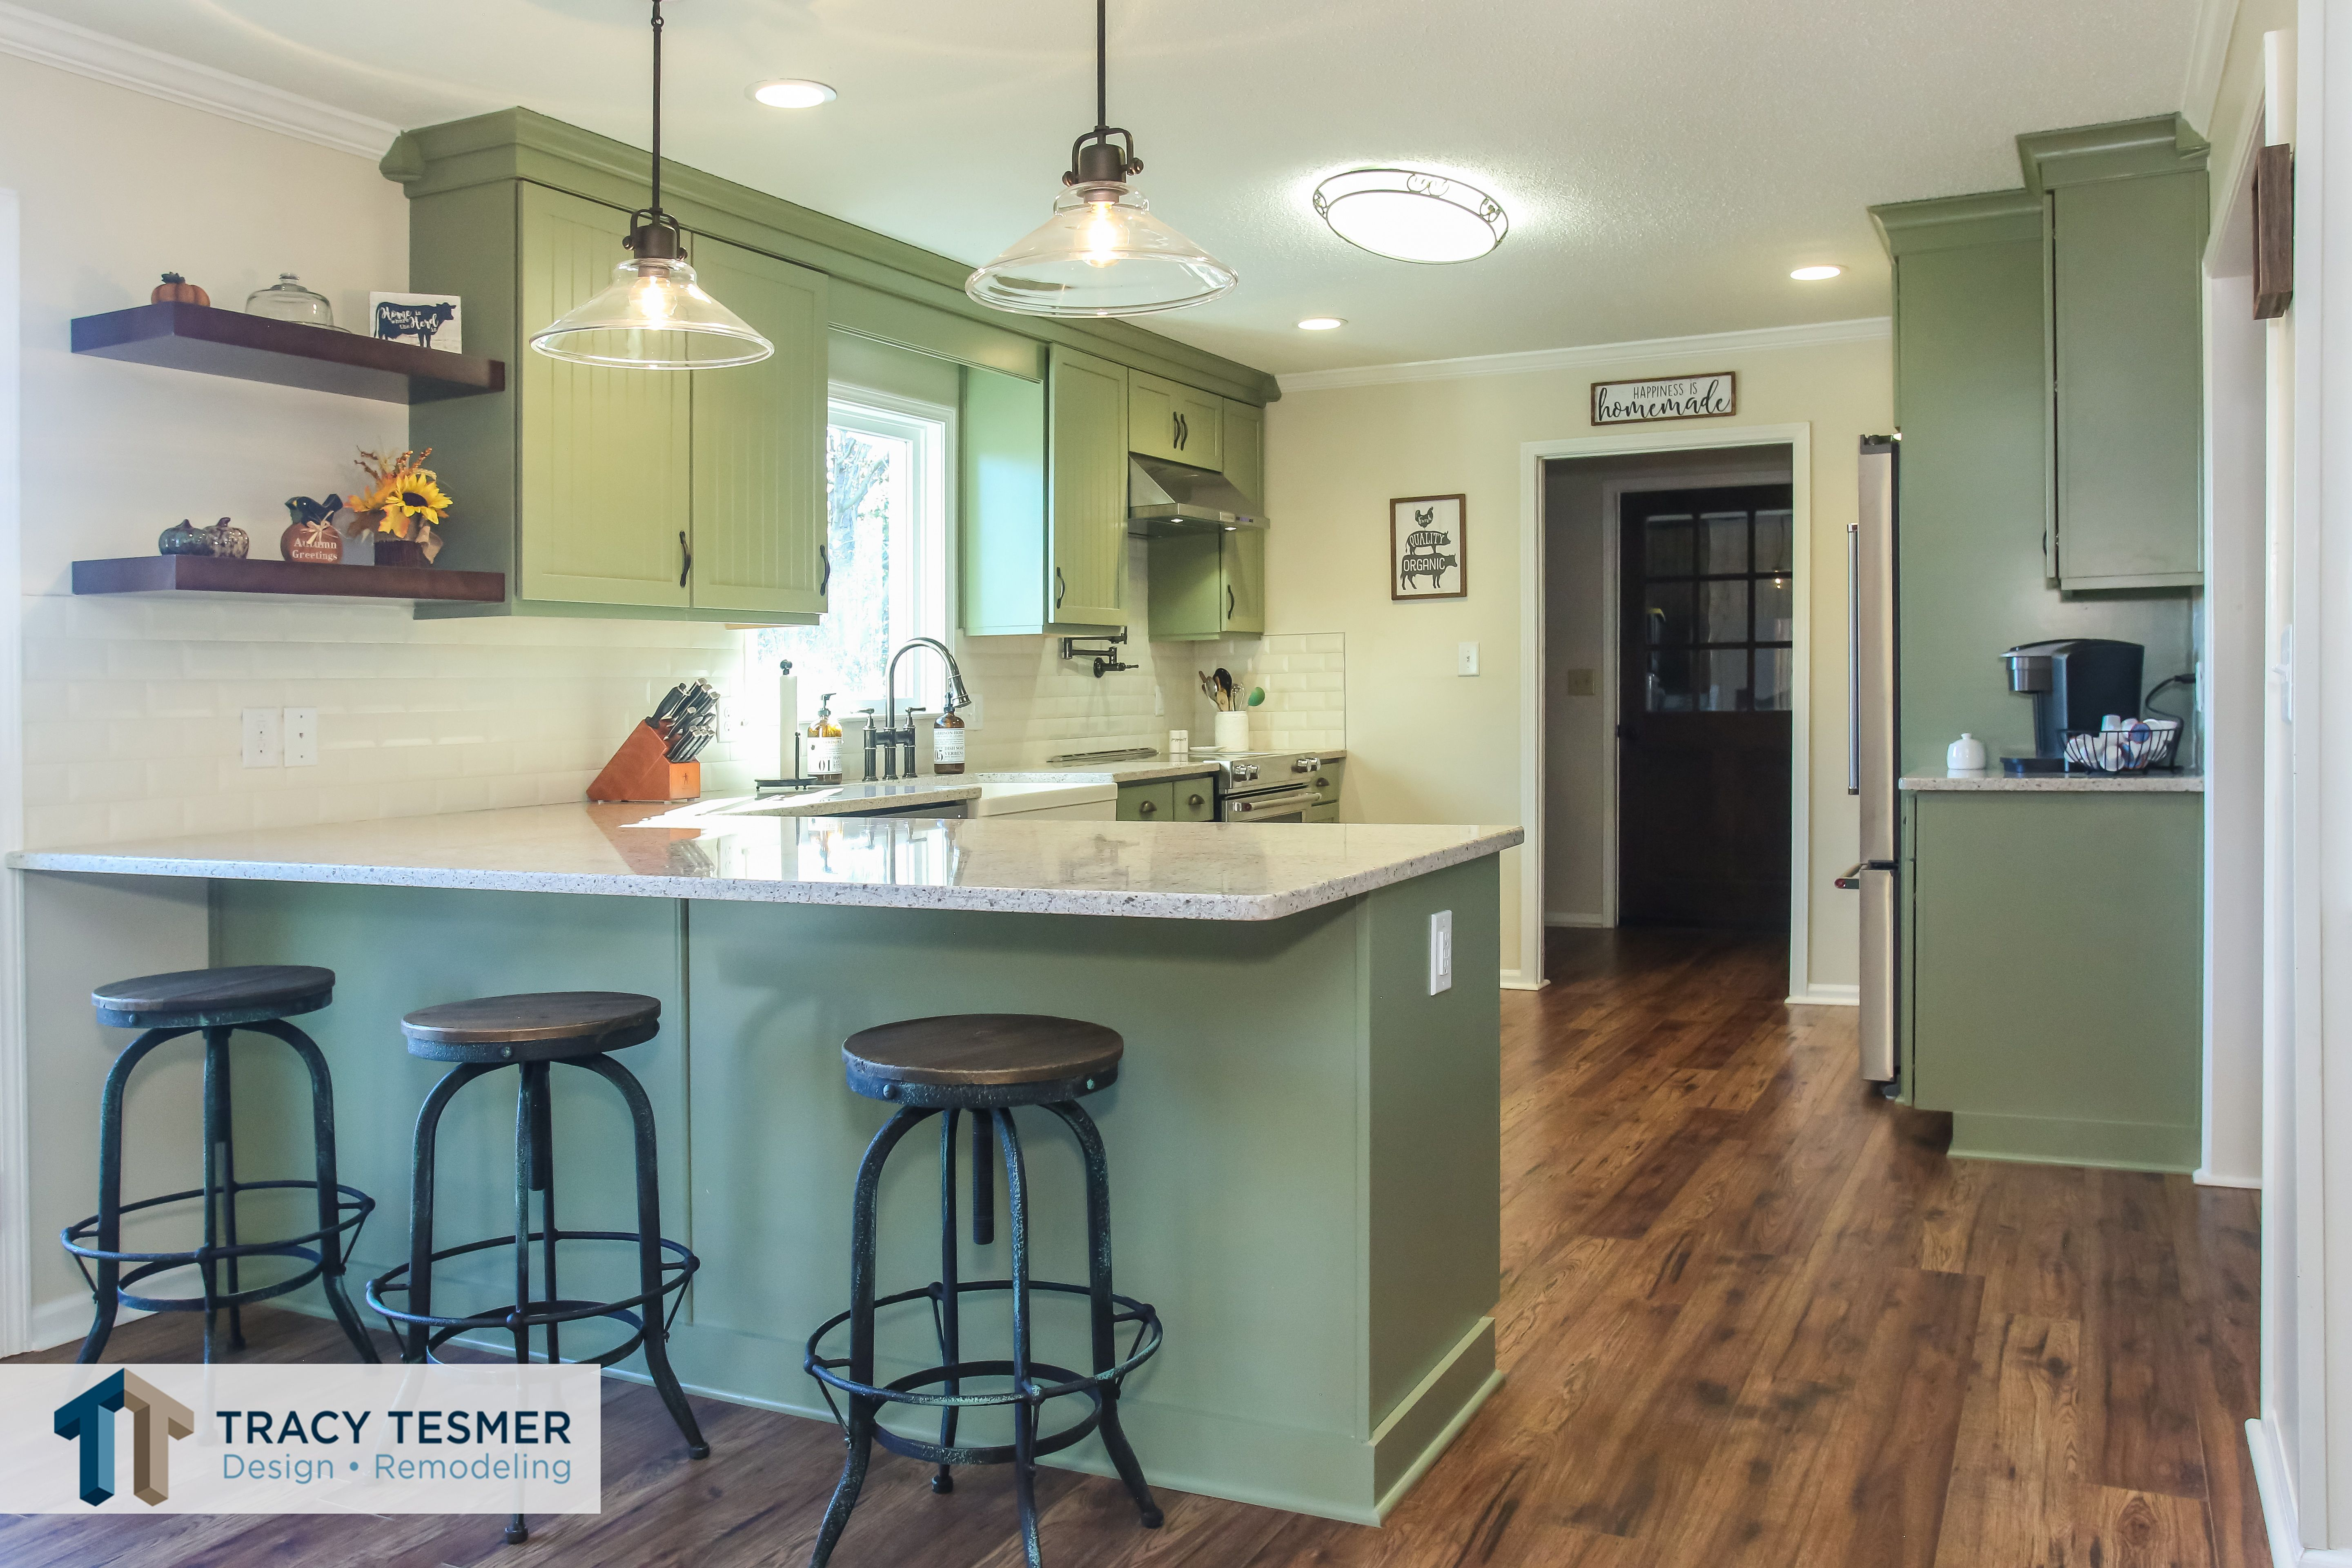 The Peninsula Bar Seating And Open Format Allow For Holiday Entertaining Needs Of Varyi Farmhouse Kitchen Remodel Home Remodeling Contractors Kitchen Remodel